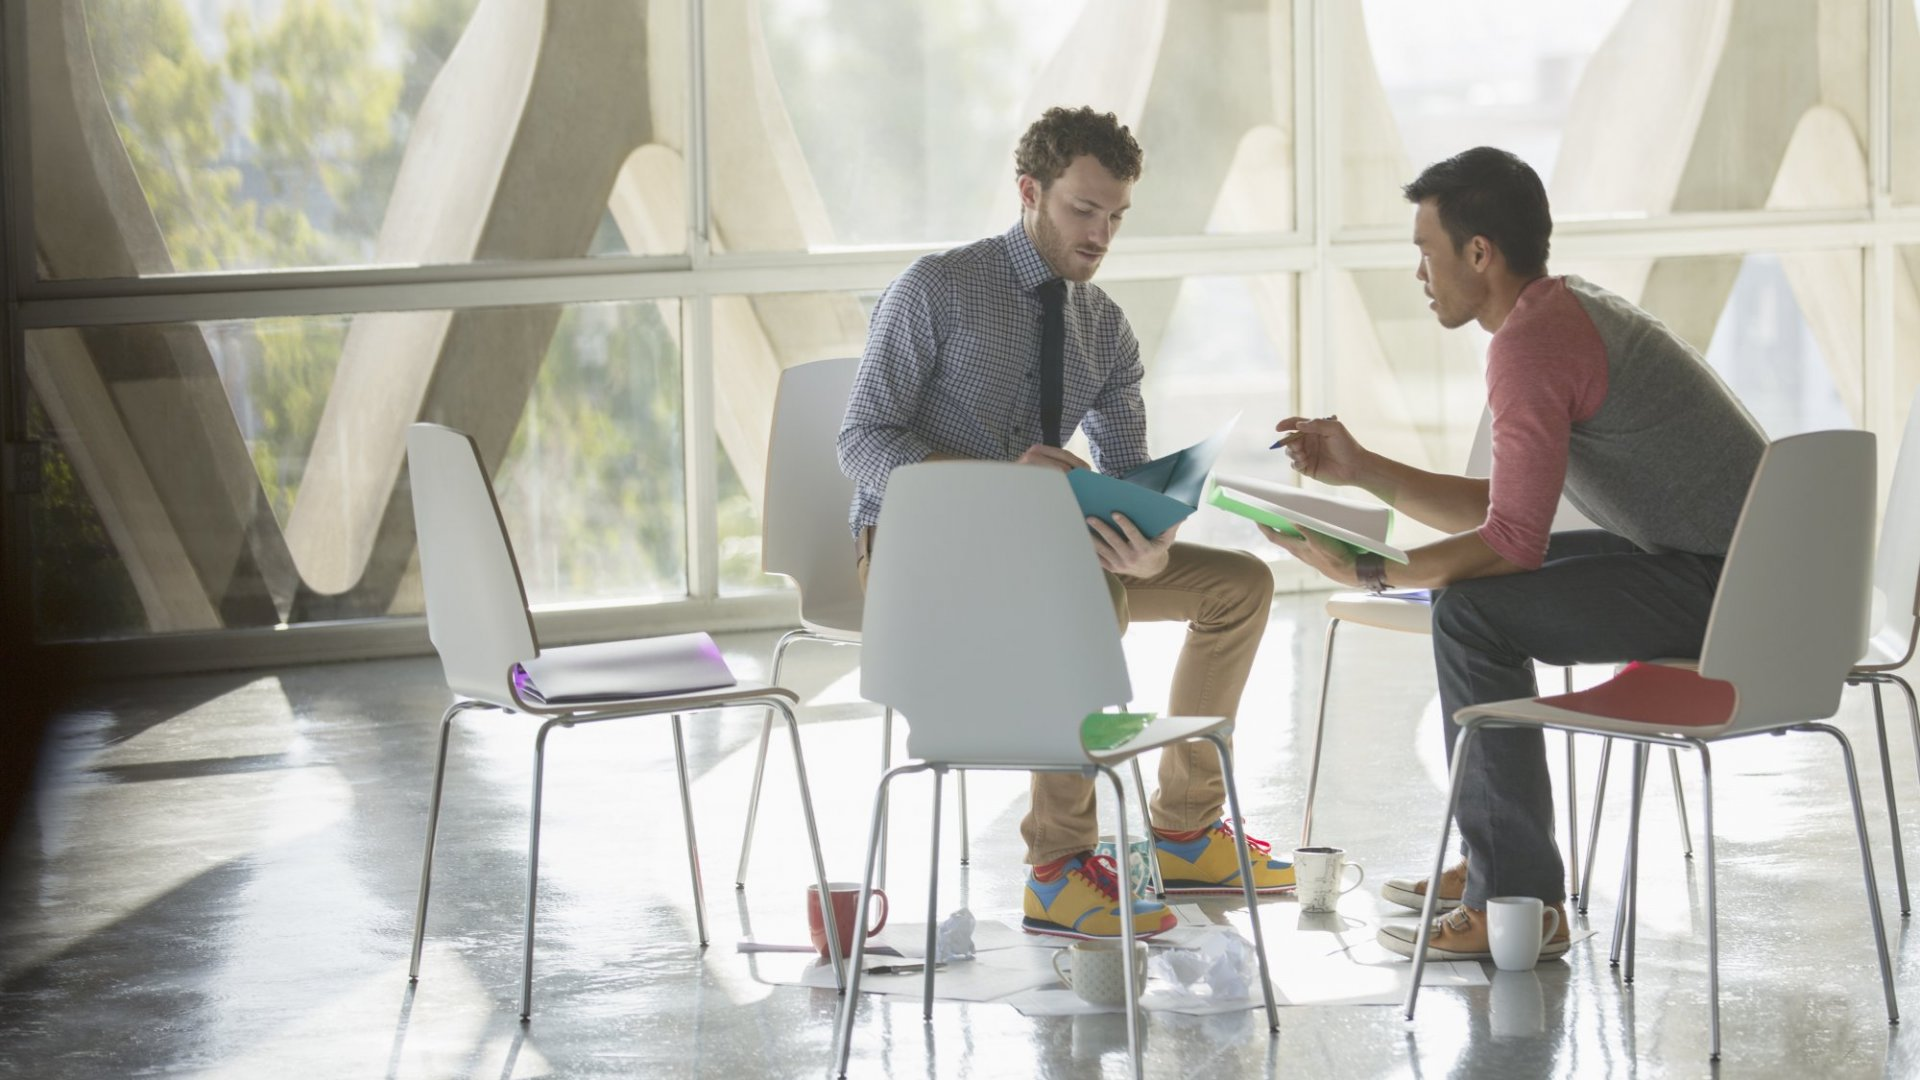 How to Ask Employees to Redo Their Work (Without Coming Across as a Jerk)